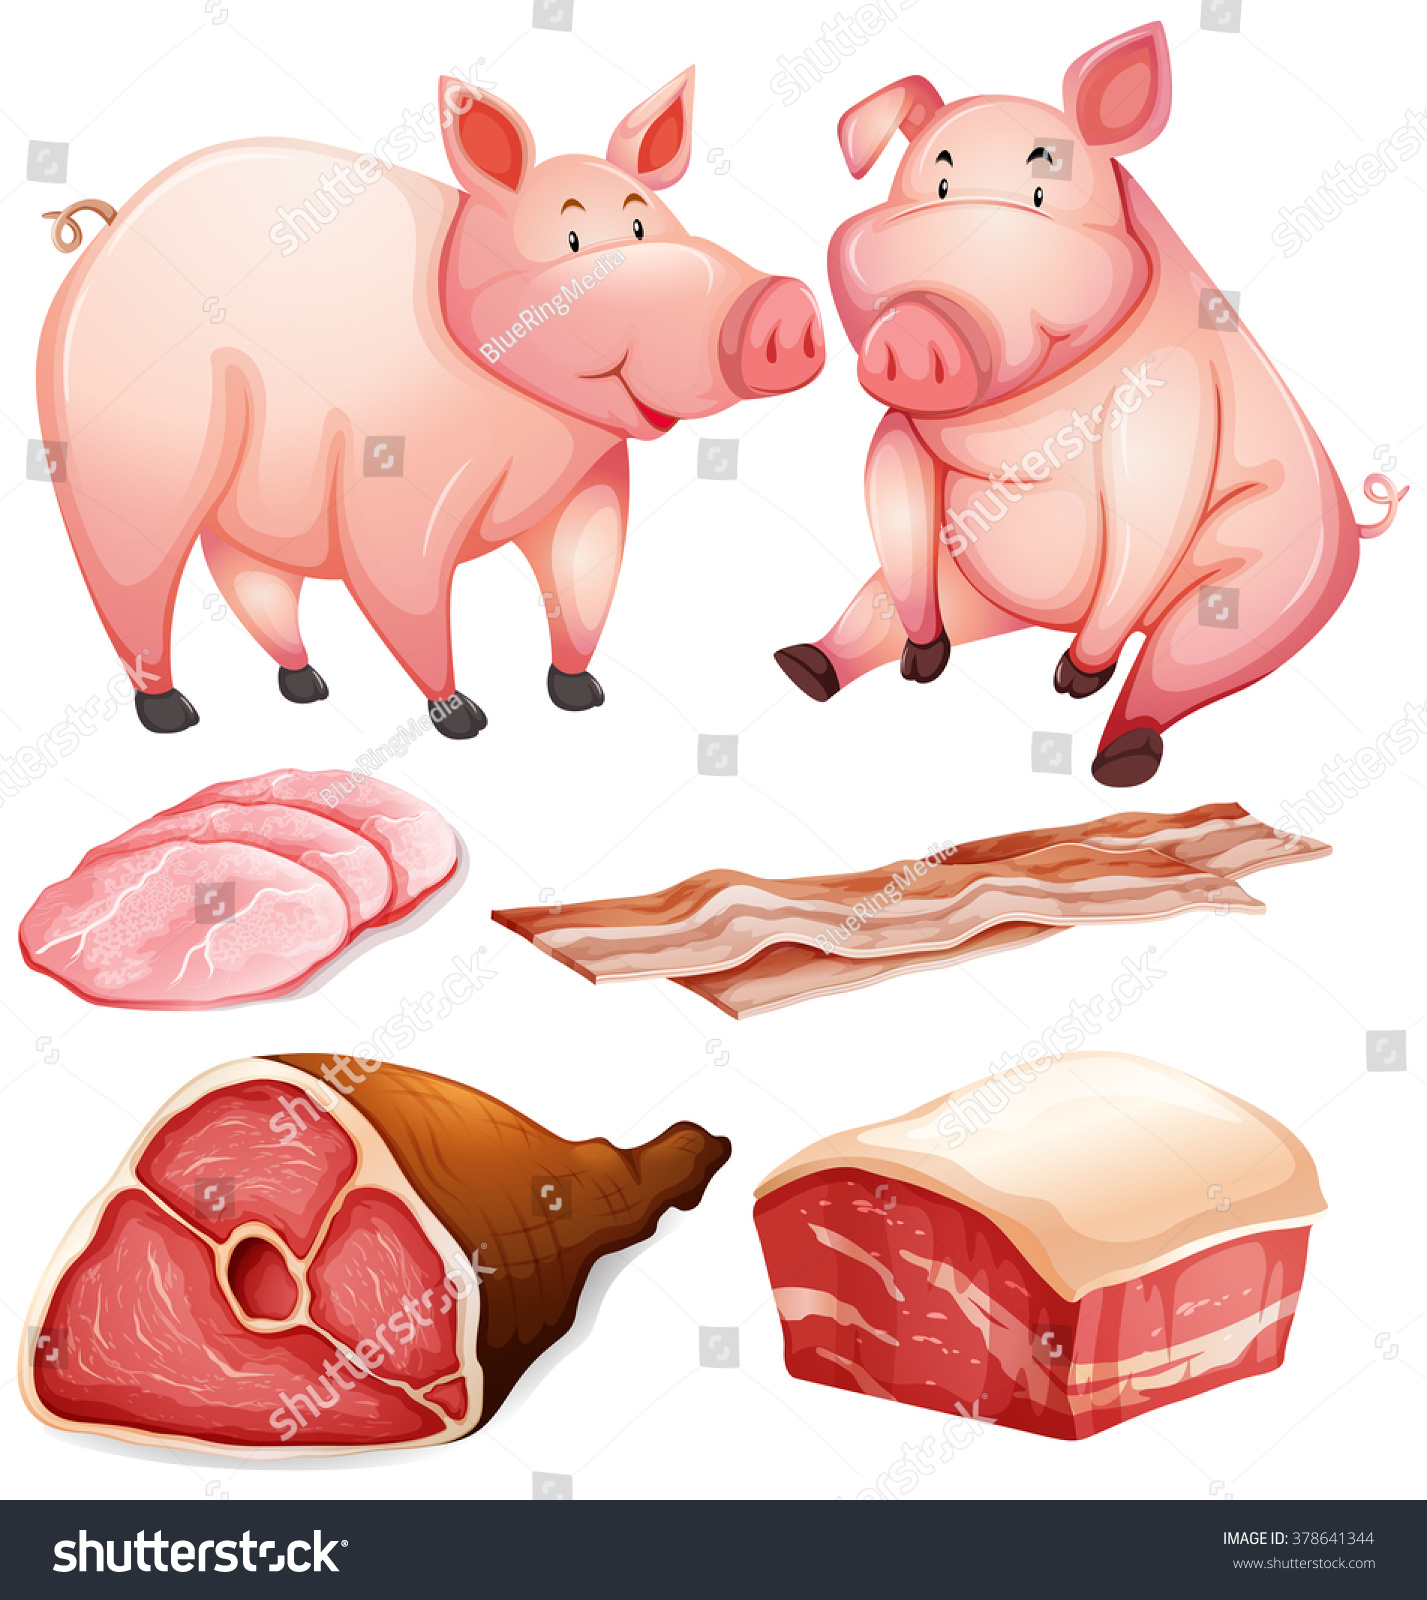 Pig Pig Products Illustration Stock Vector 378641344